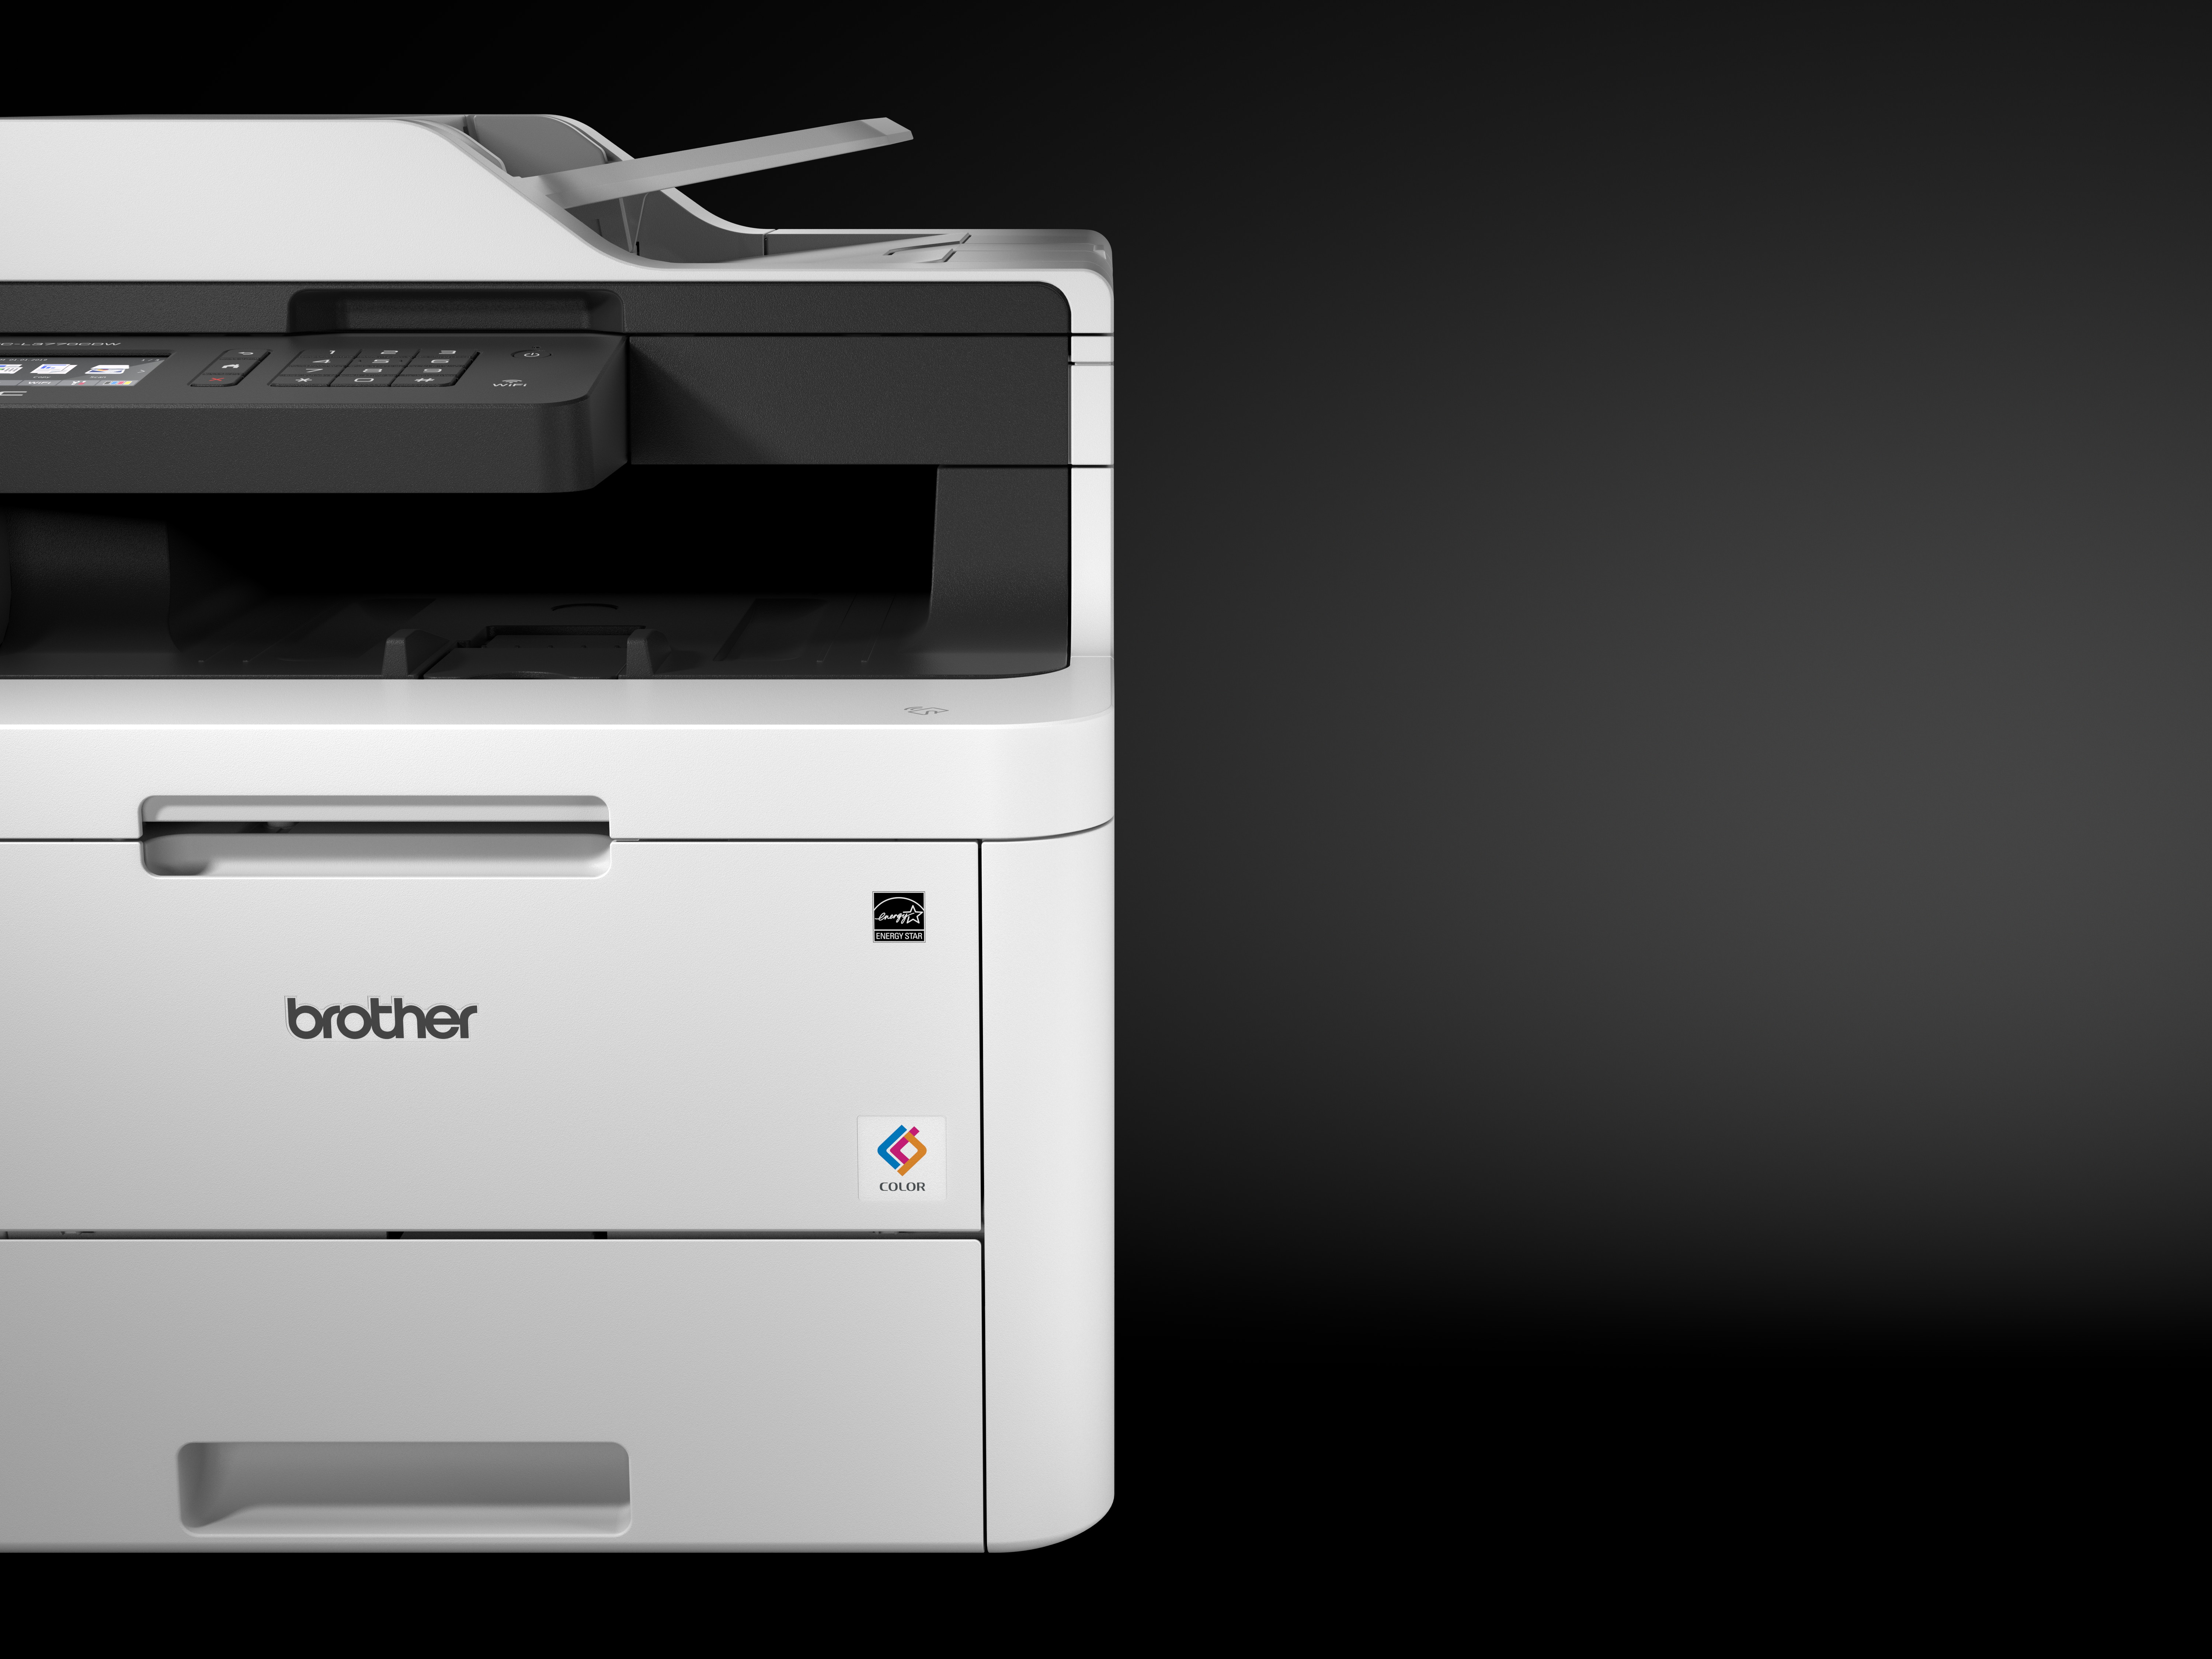 One - model number MFCL3770CDW - of the five new printers in the range